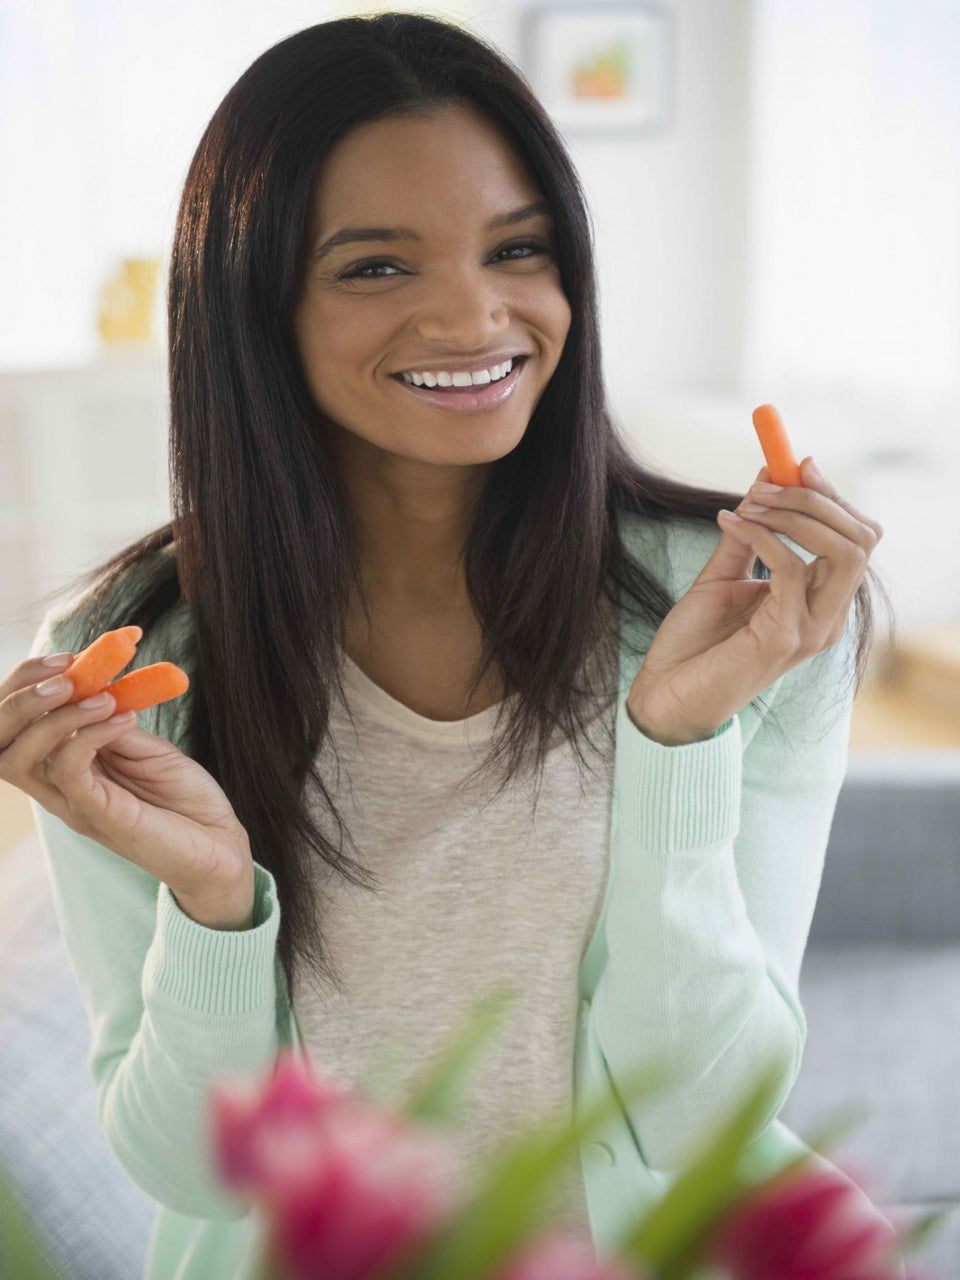 Ask the Experts: Weight Loss Superfoods